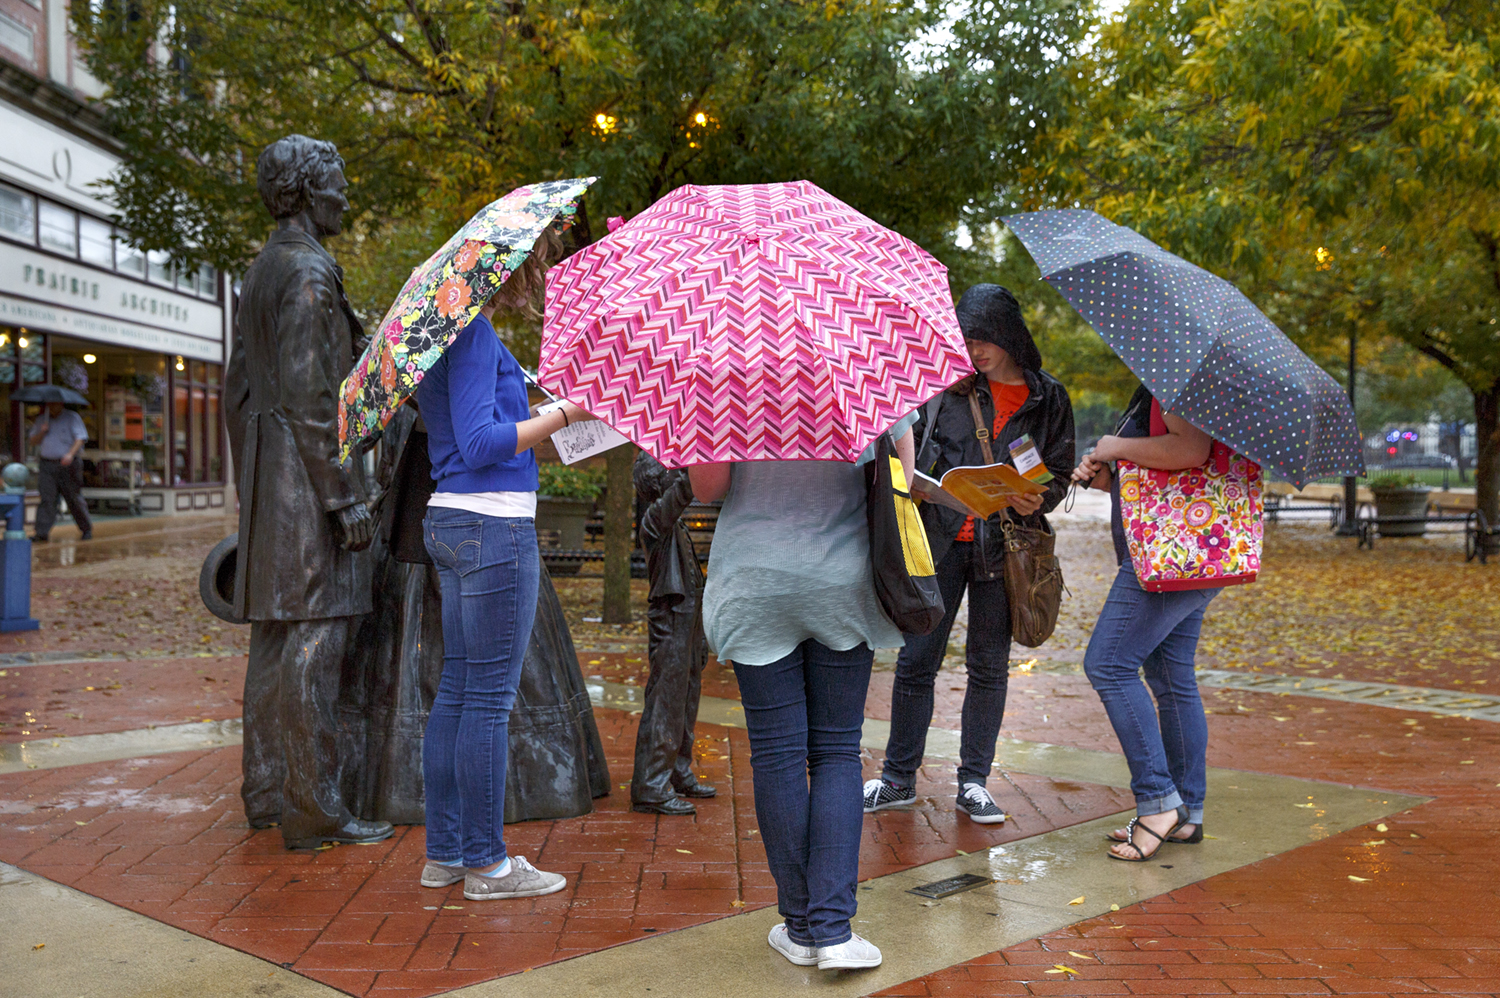 A group of students from Olivet Nazarene University pause at the Lincoln family sculpture on the Old Capitol Plaza Thursday, Oct. 2, 2014, during a rainshower. The women are attending a conference at a downtown hotel and were out on their lunch break. Rich Saal/The State Journal-Register